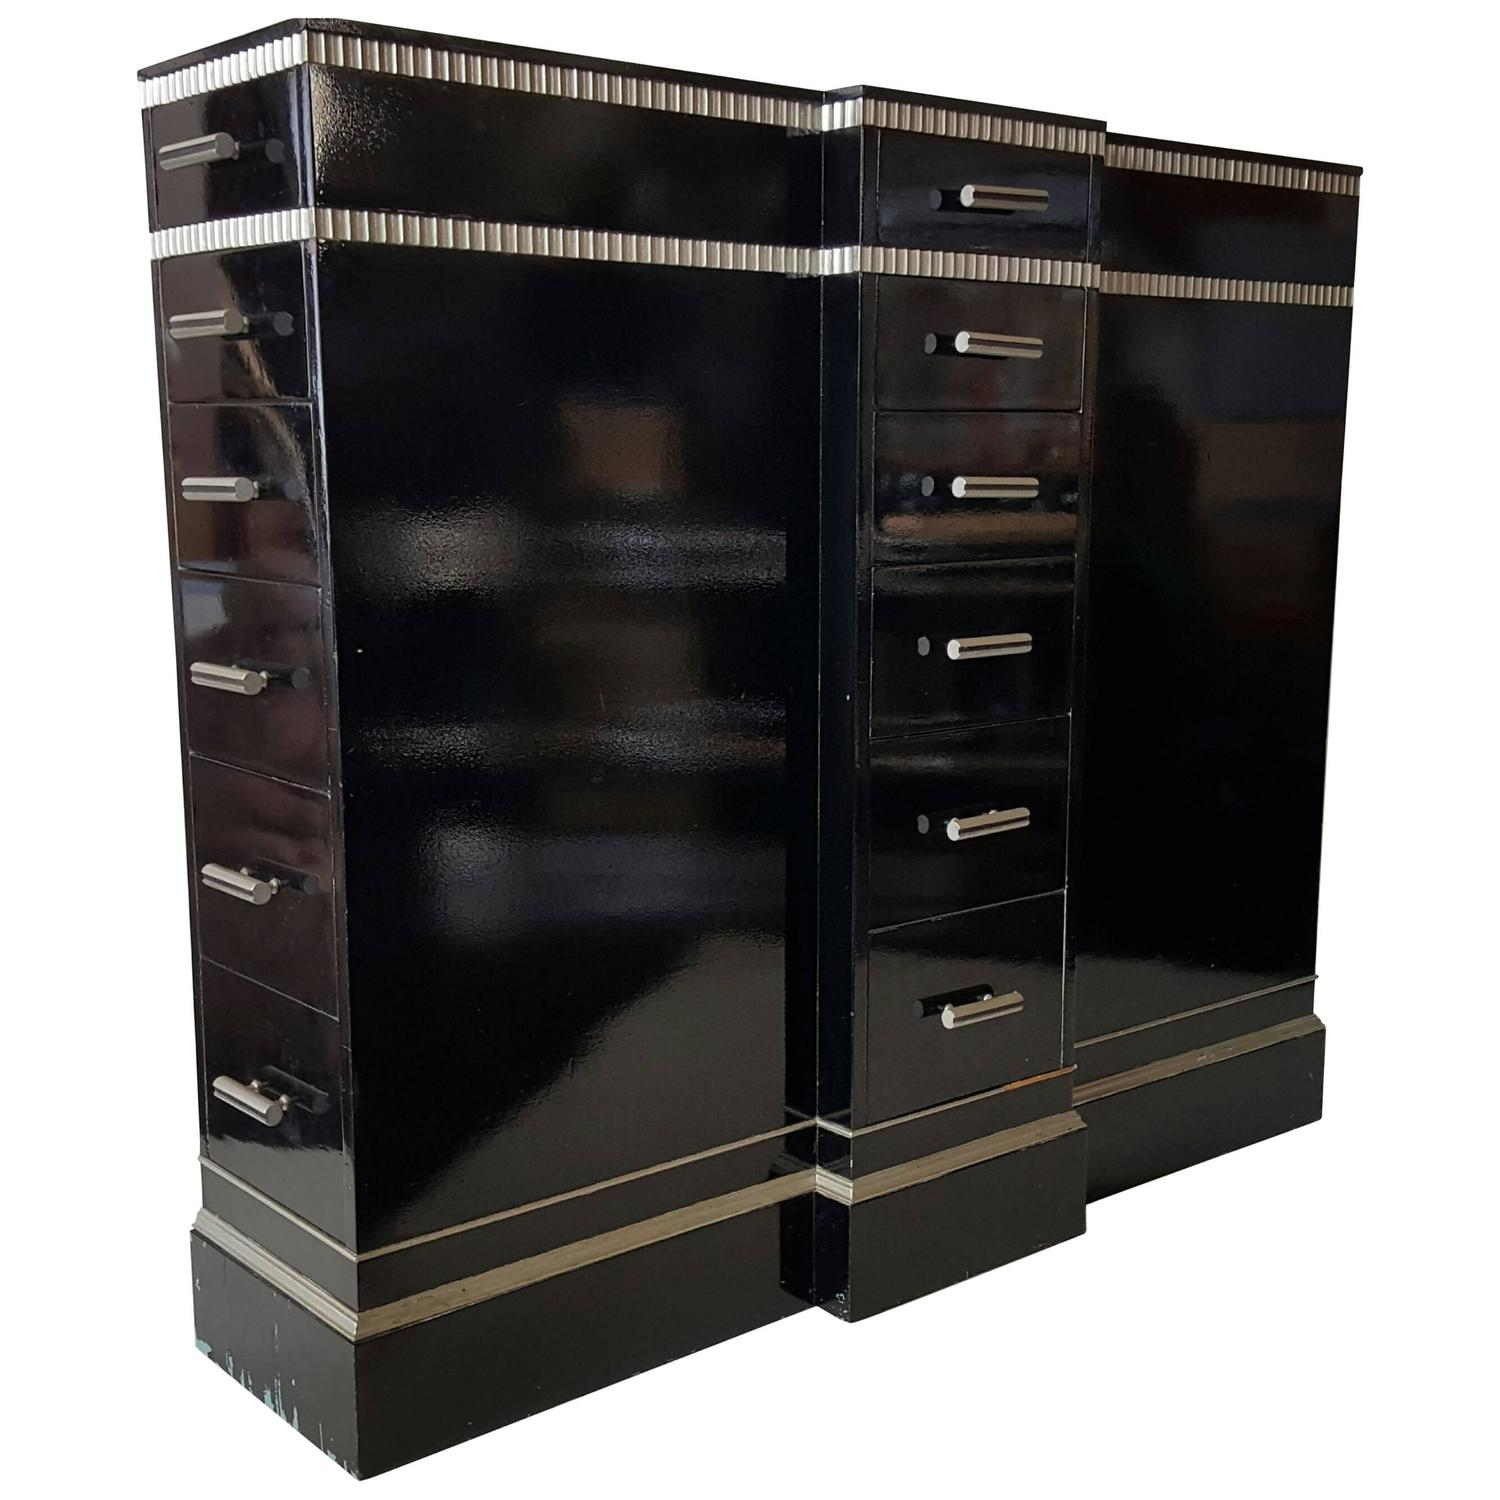 Kittinger Furniture Tables Storage Cabinets & More 78 For Sale